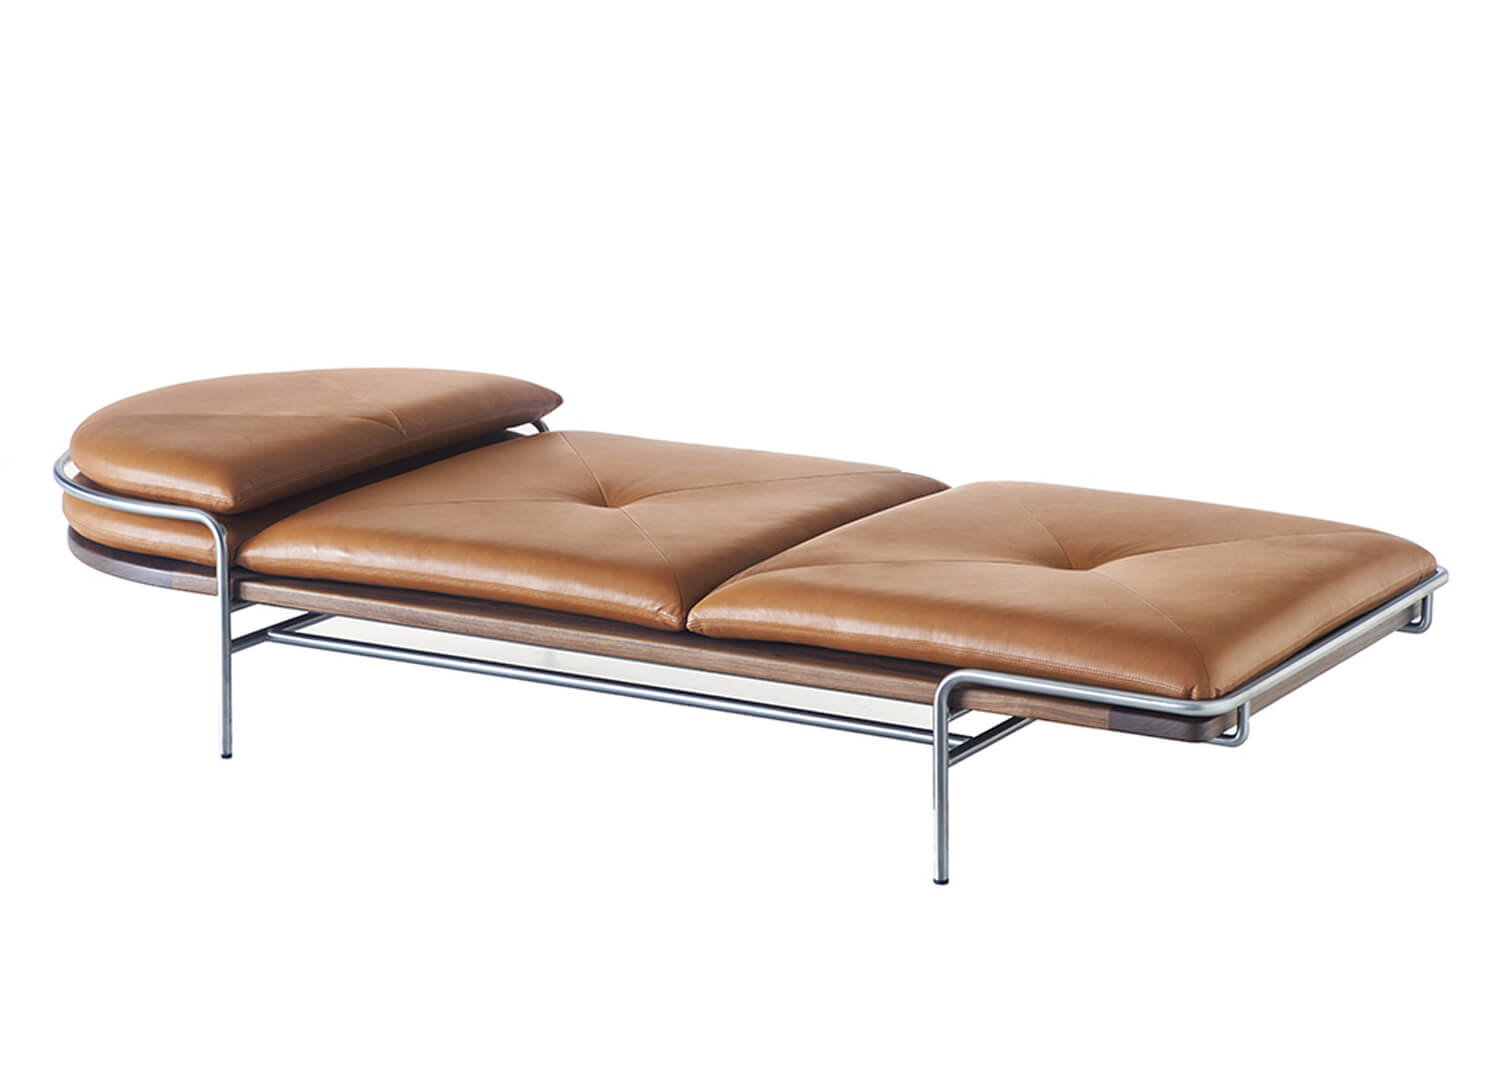 est living bassamfellows geometric daybed 01